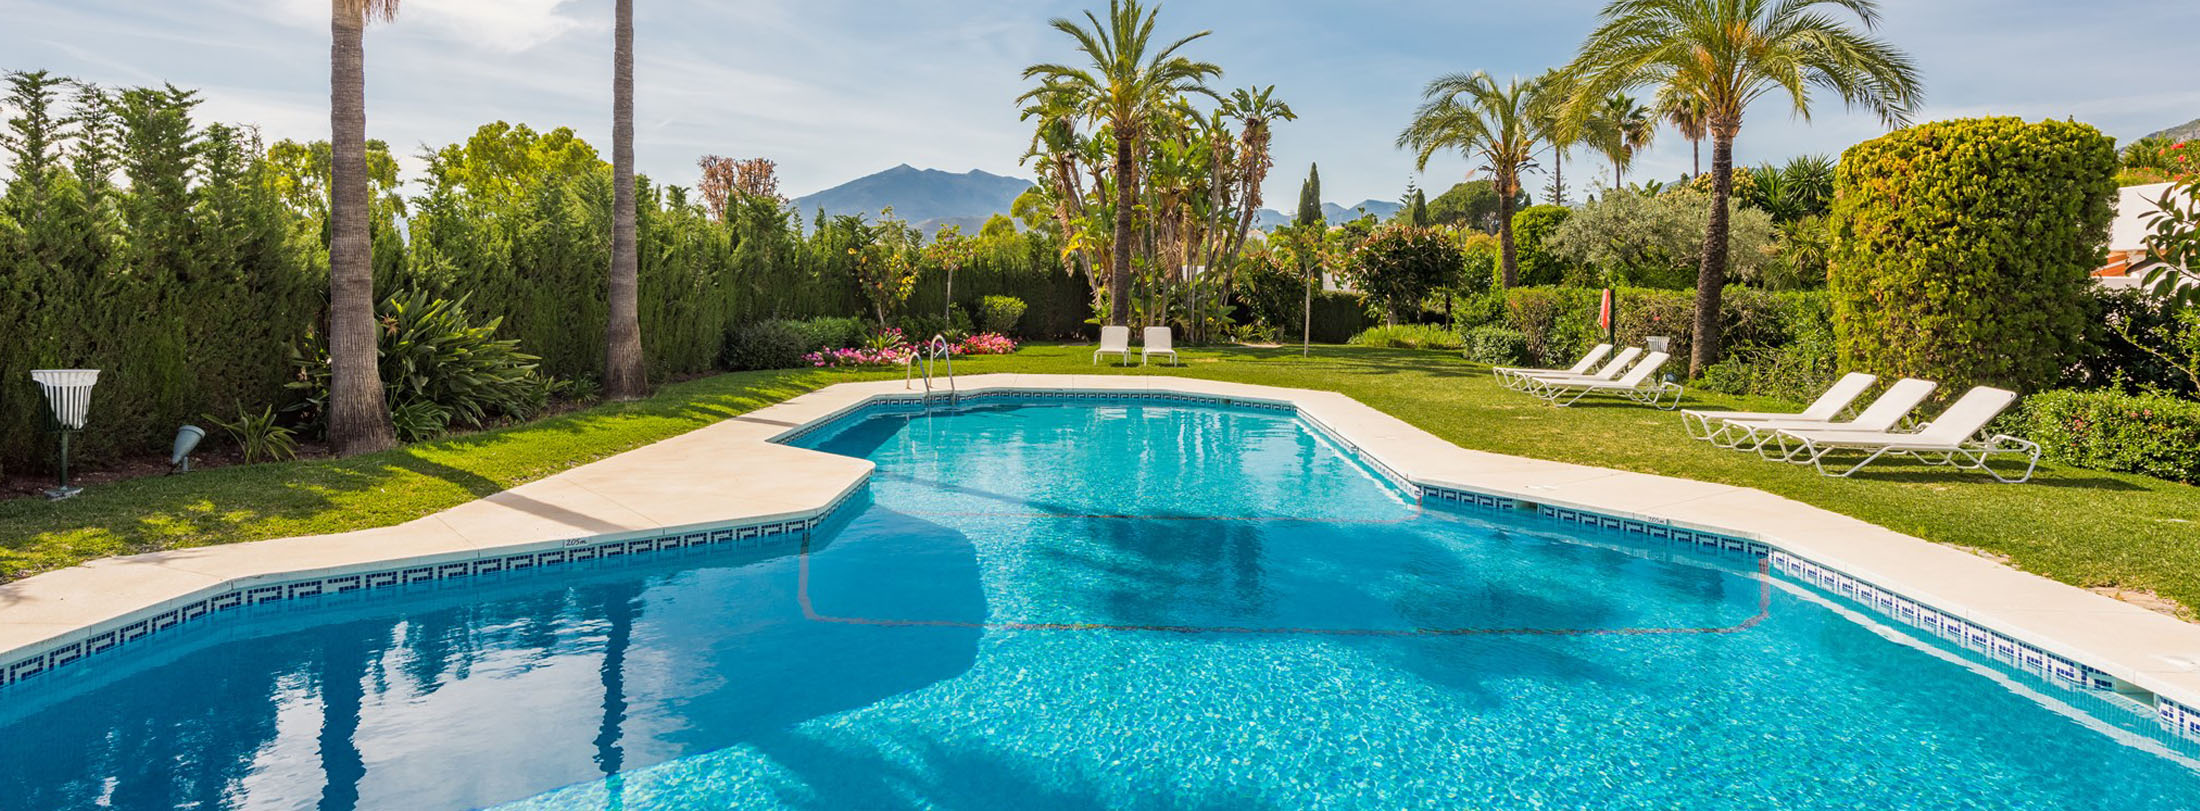 Marbella Vacational Rentals